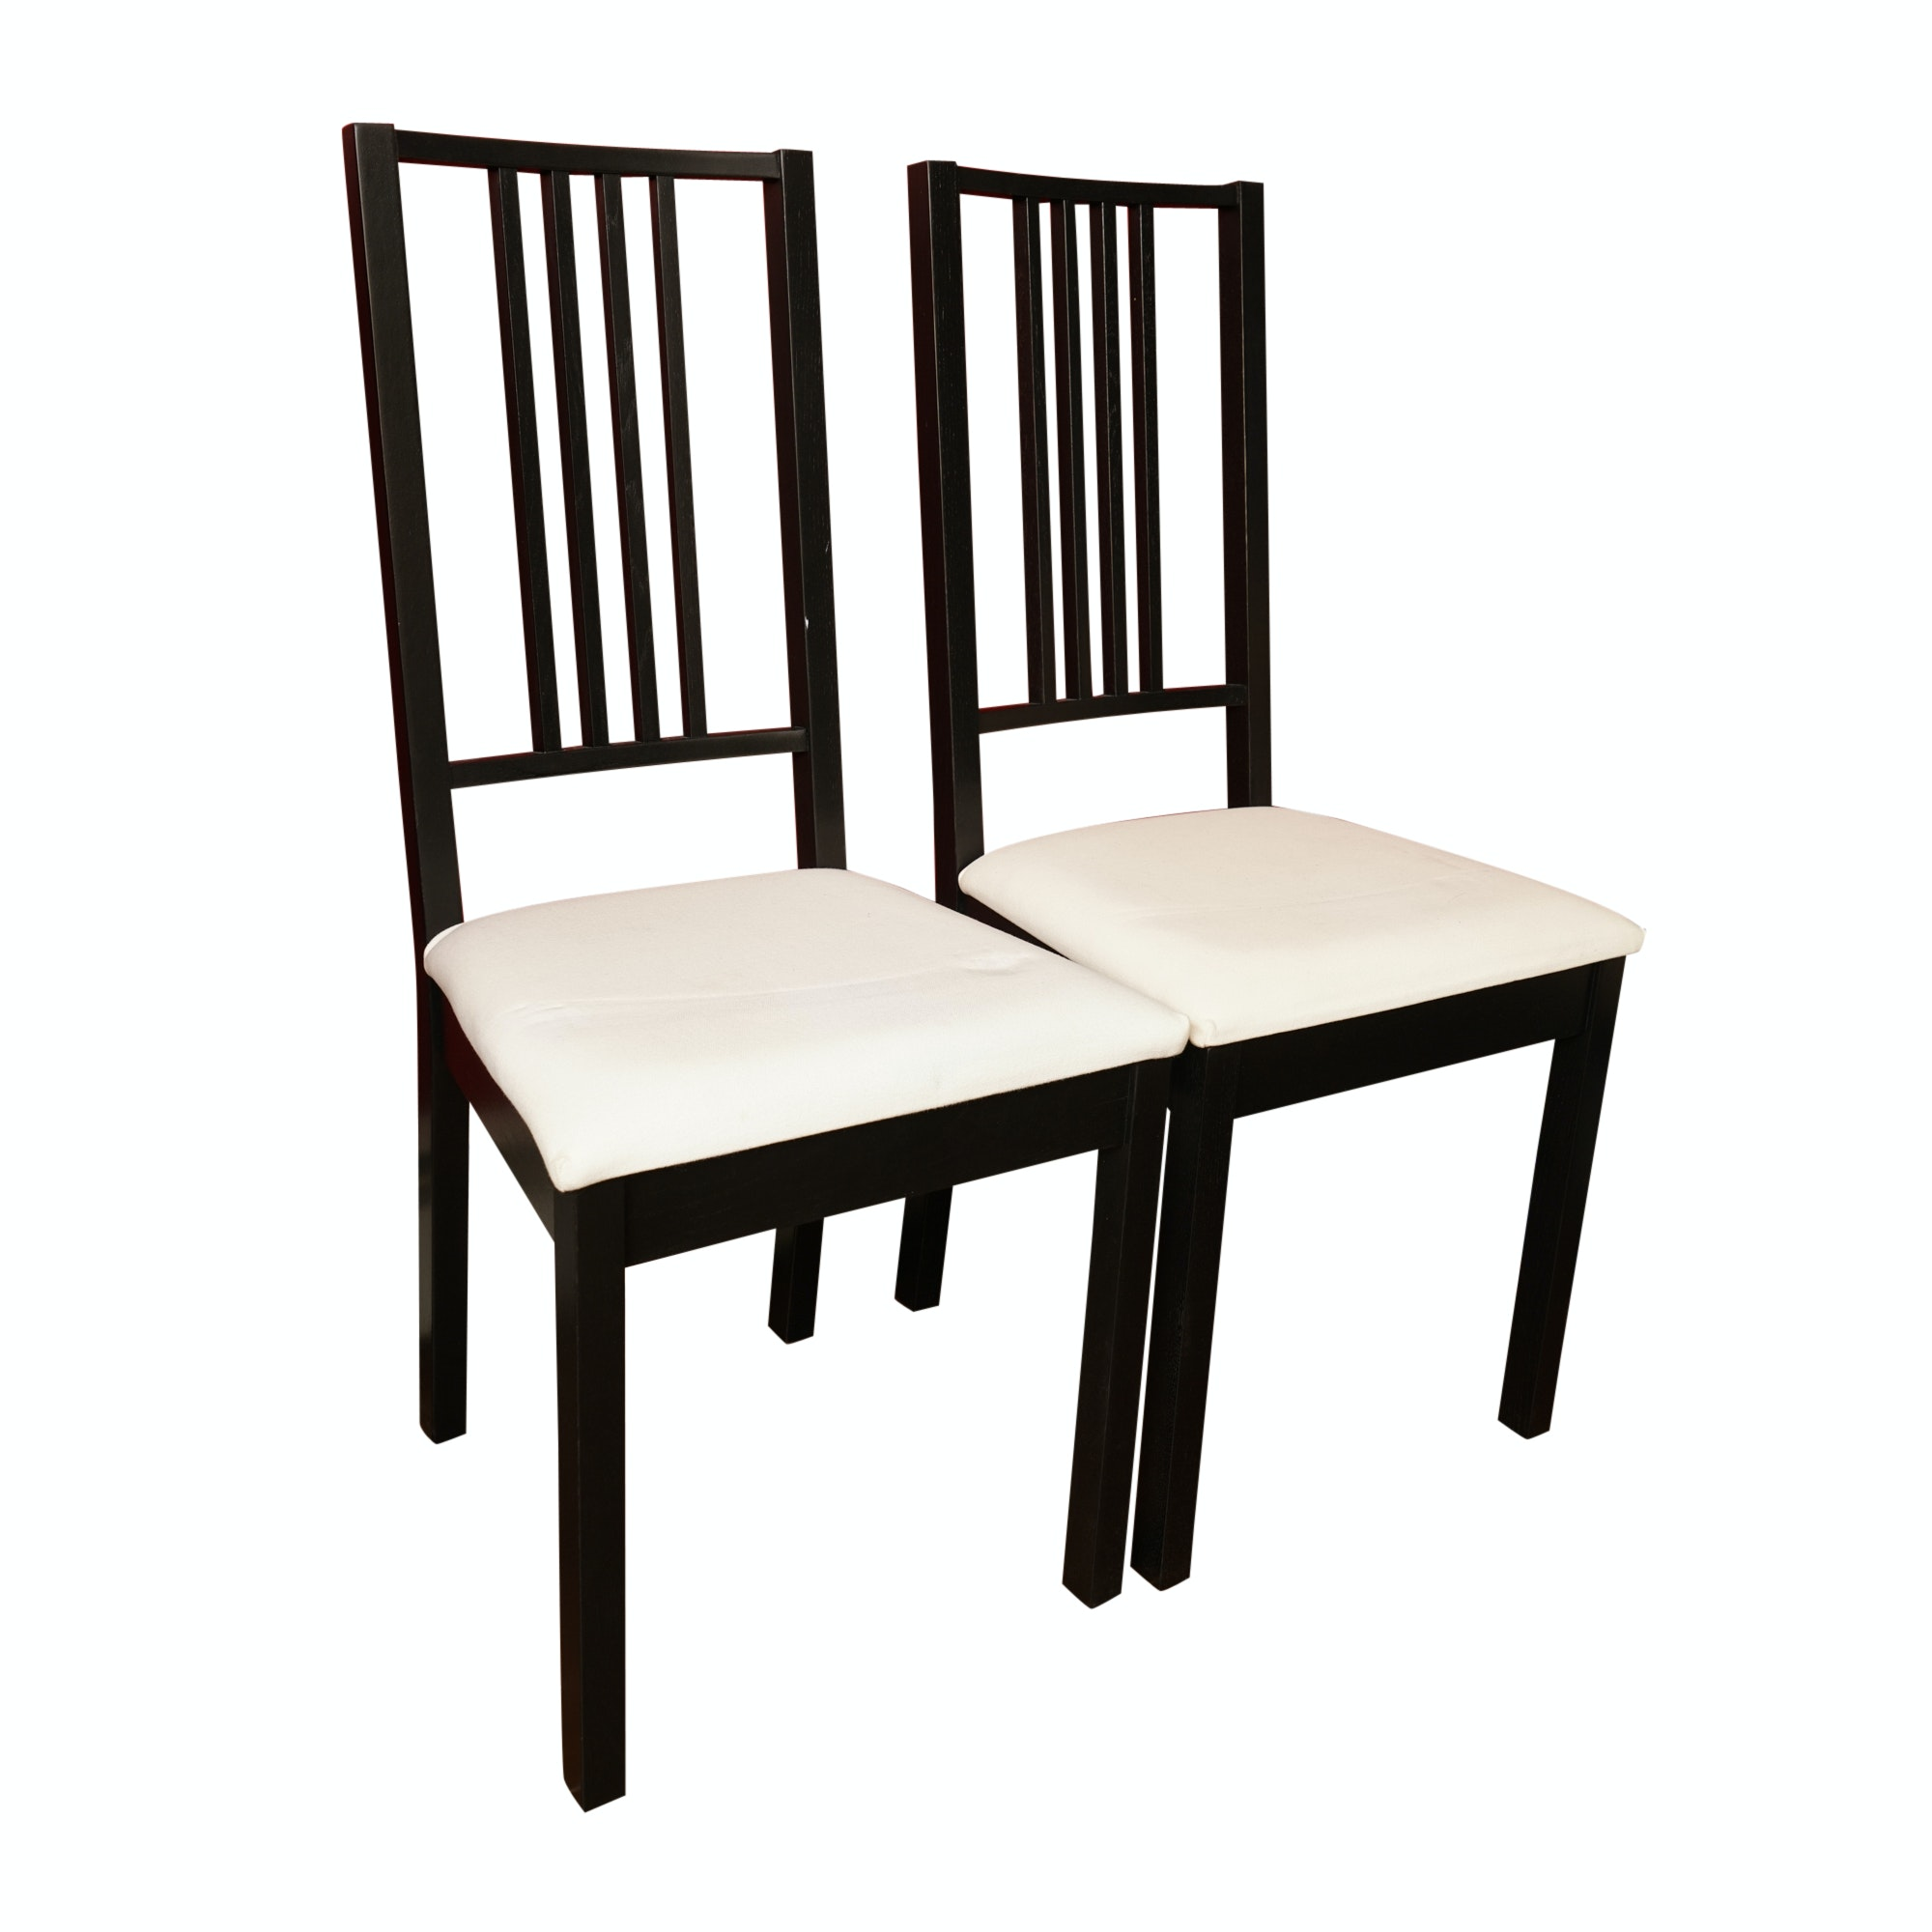 Pair of Contemporary Style Dining Chairs